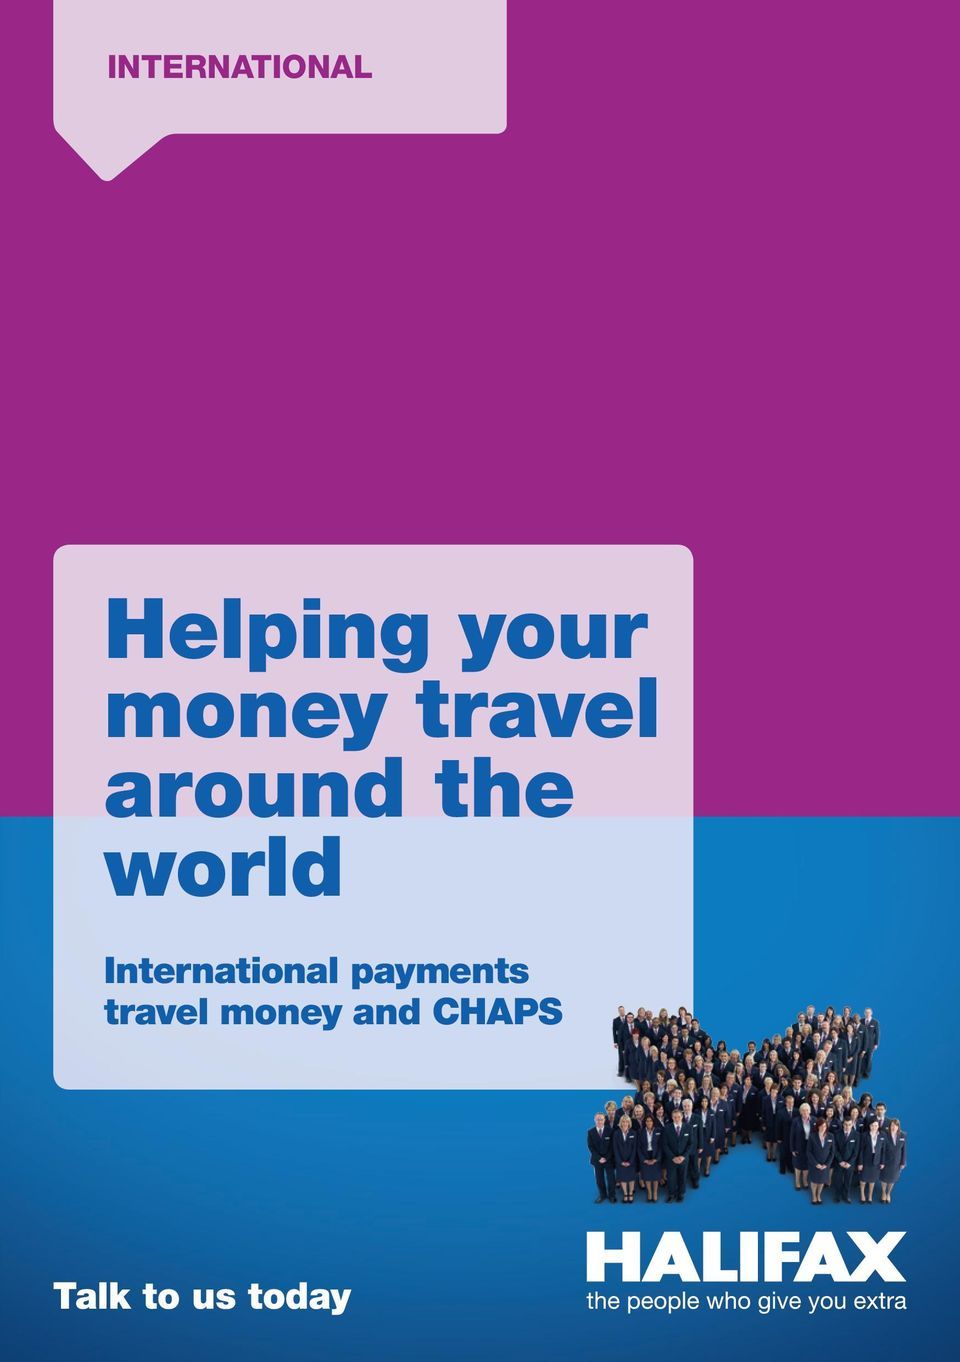 International payments travel